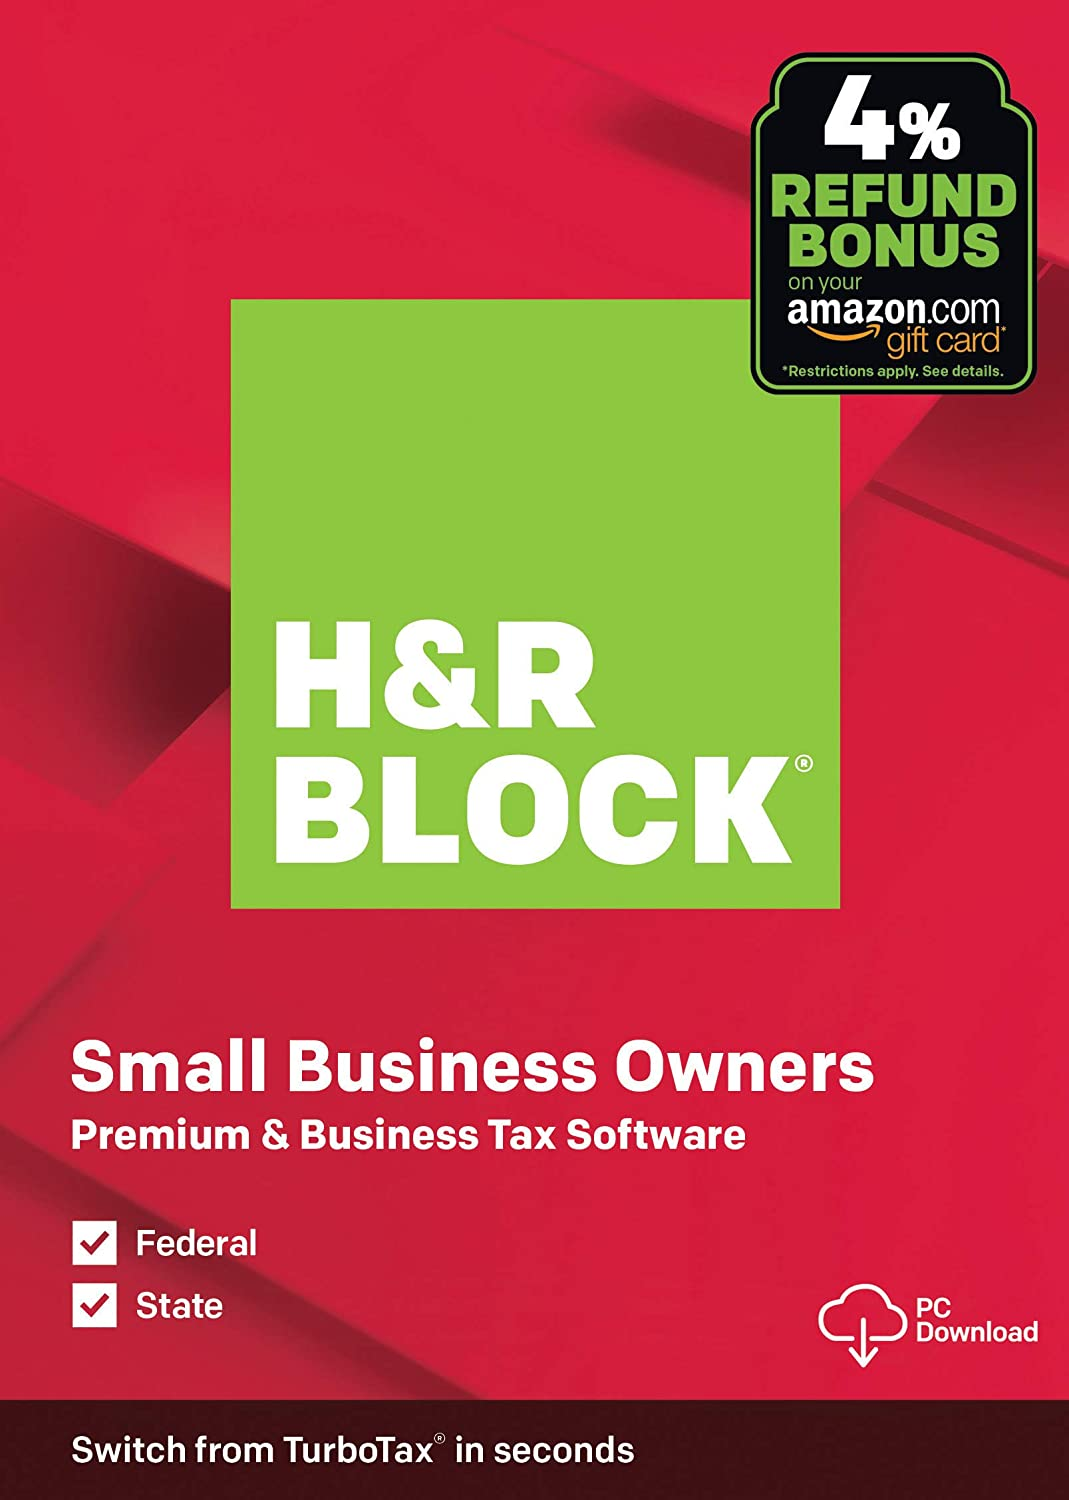 H&R Block Tax Software Premium and Business Discount Coupon Code